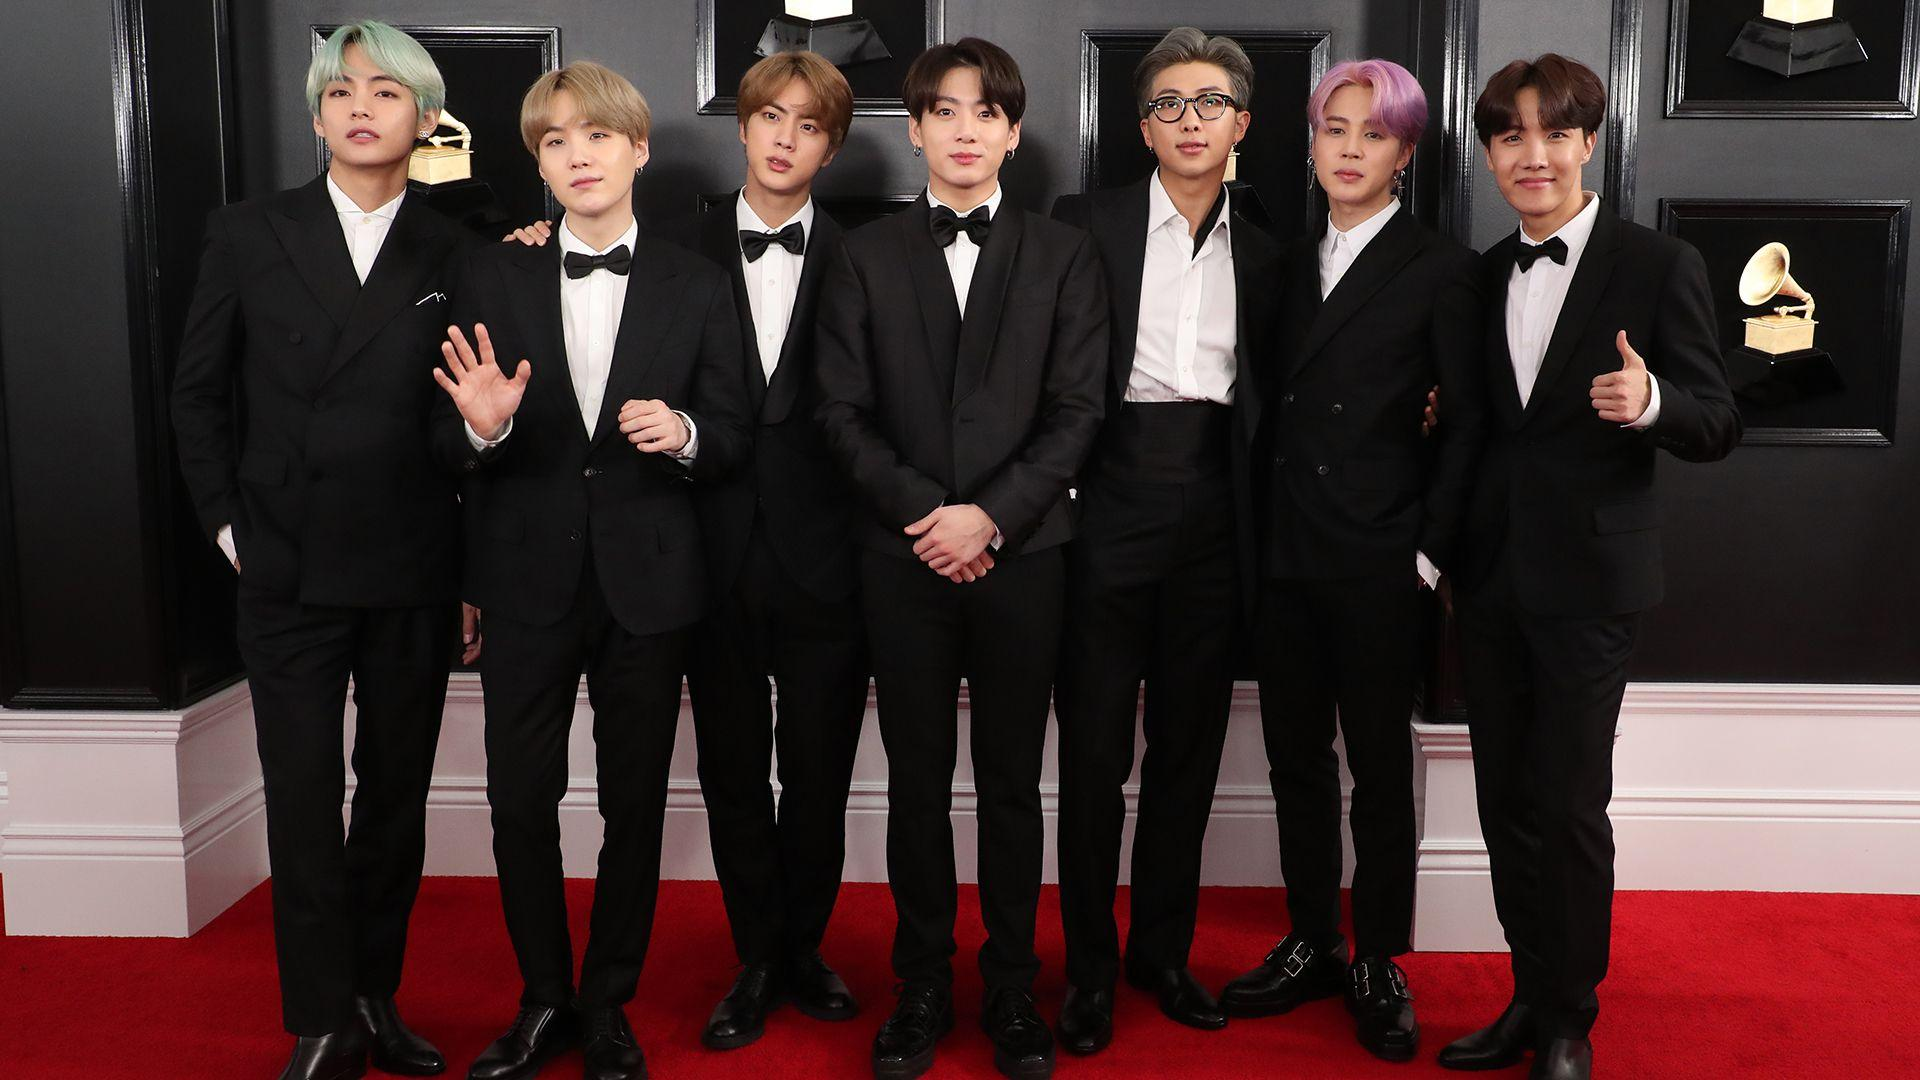 BTS Grammys 2019 Loss Fan Reactions | Tweets About BTS Grammys 2019 ...